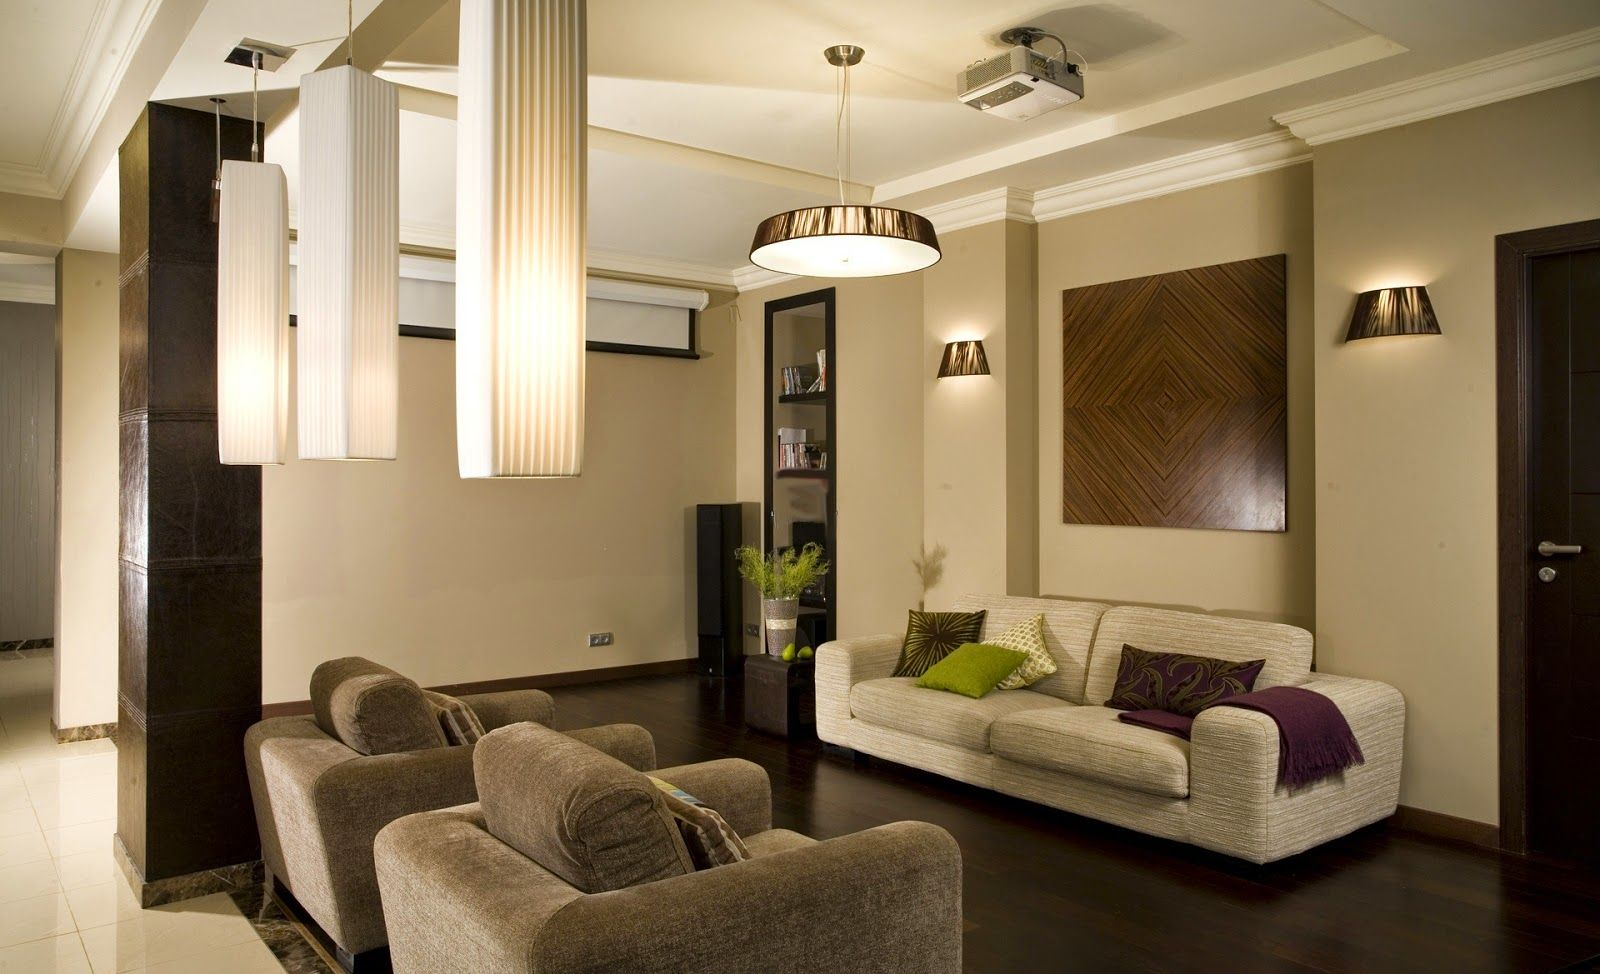 Top ideas for modern interior design, style and furniture | Interior ...